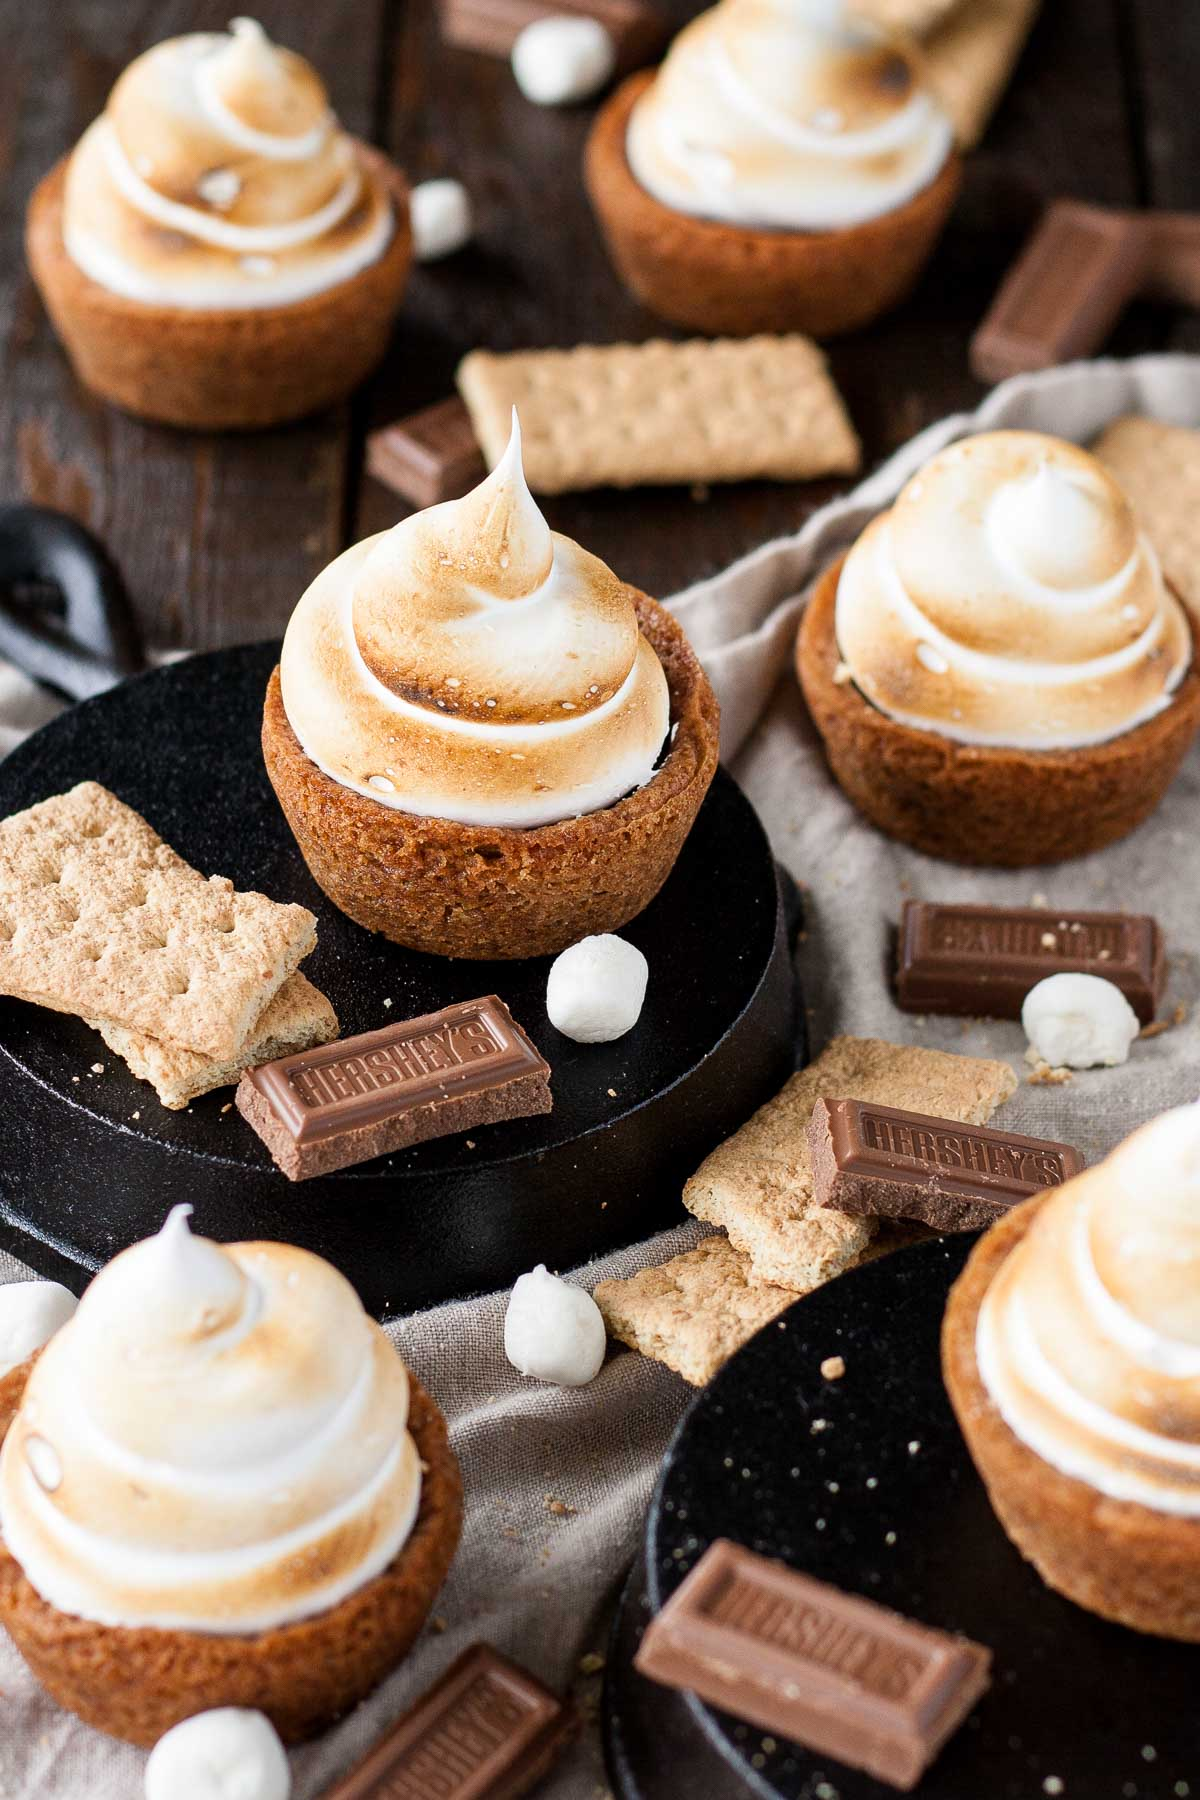 Amazing S'Mores Recipes - There are so many genius ideas and delicious s'mores recipes, I can't wait to try them!